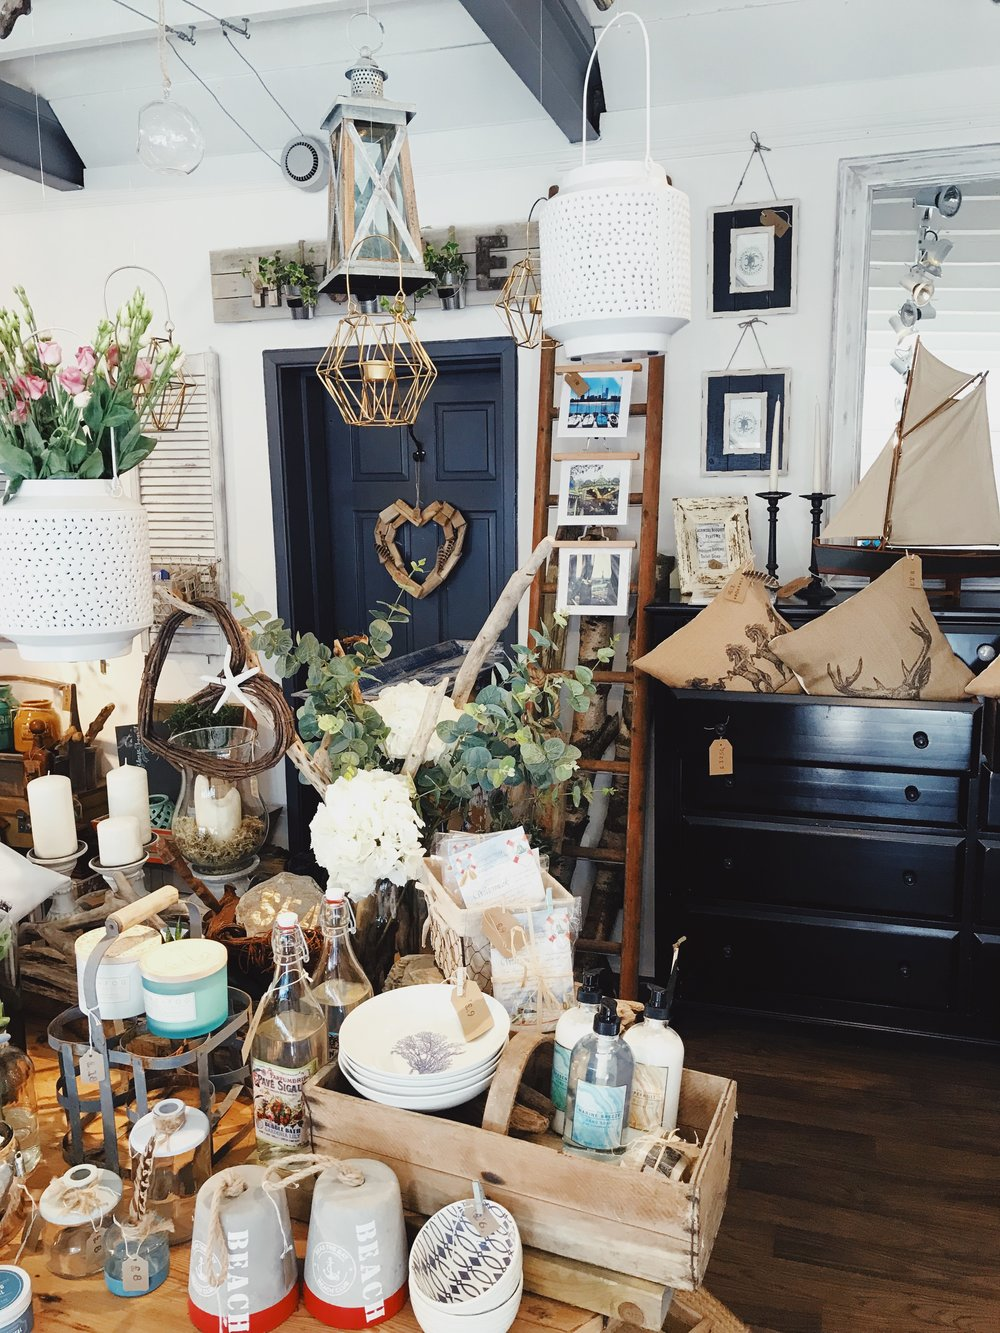 This little shop was new to Arundel and just gorgeous